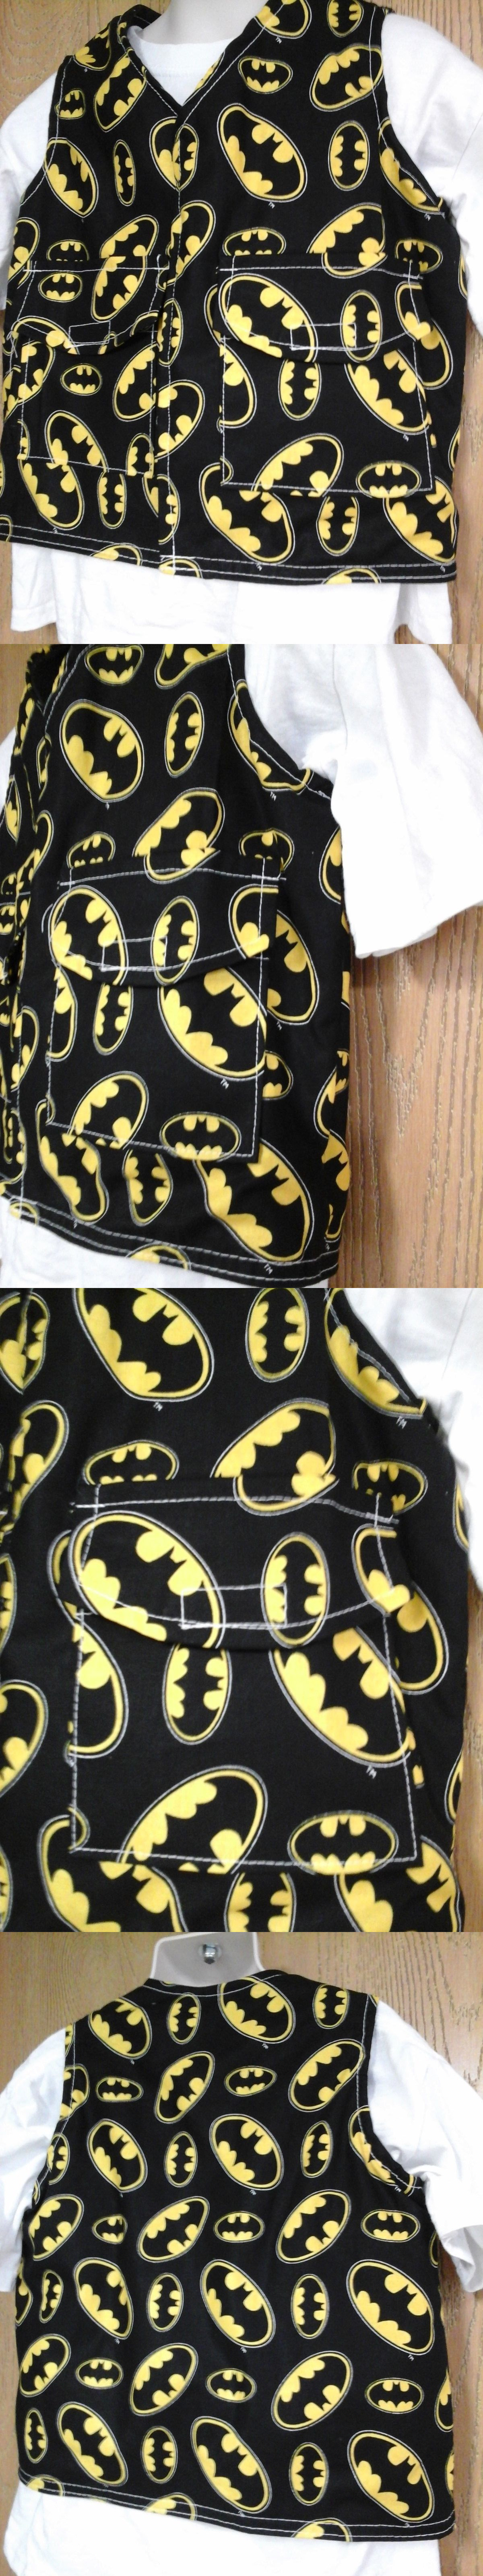 Other Daily Living Aids Batman Weighted Vest For Special Needs